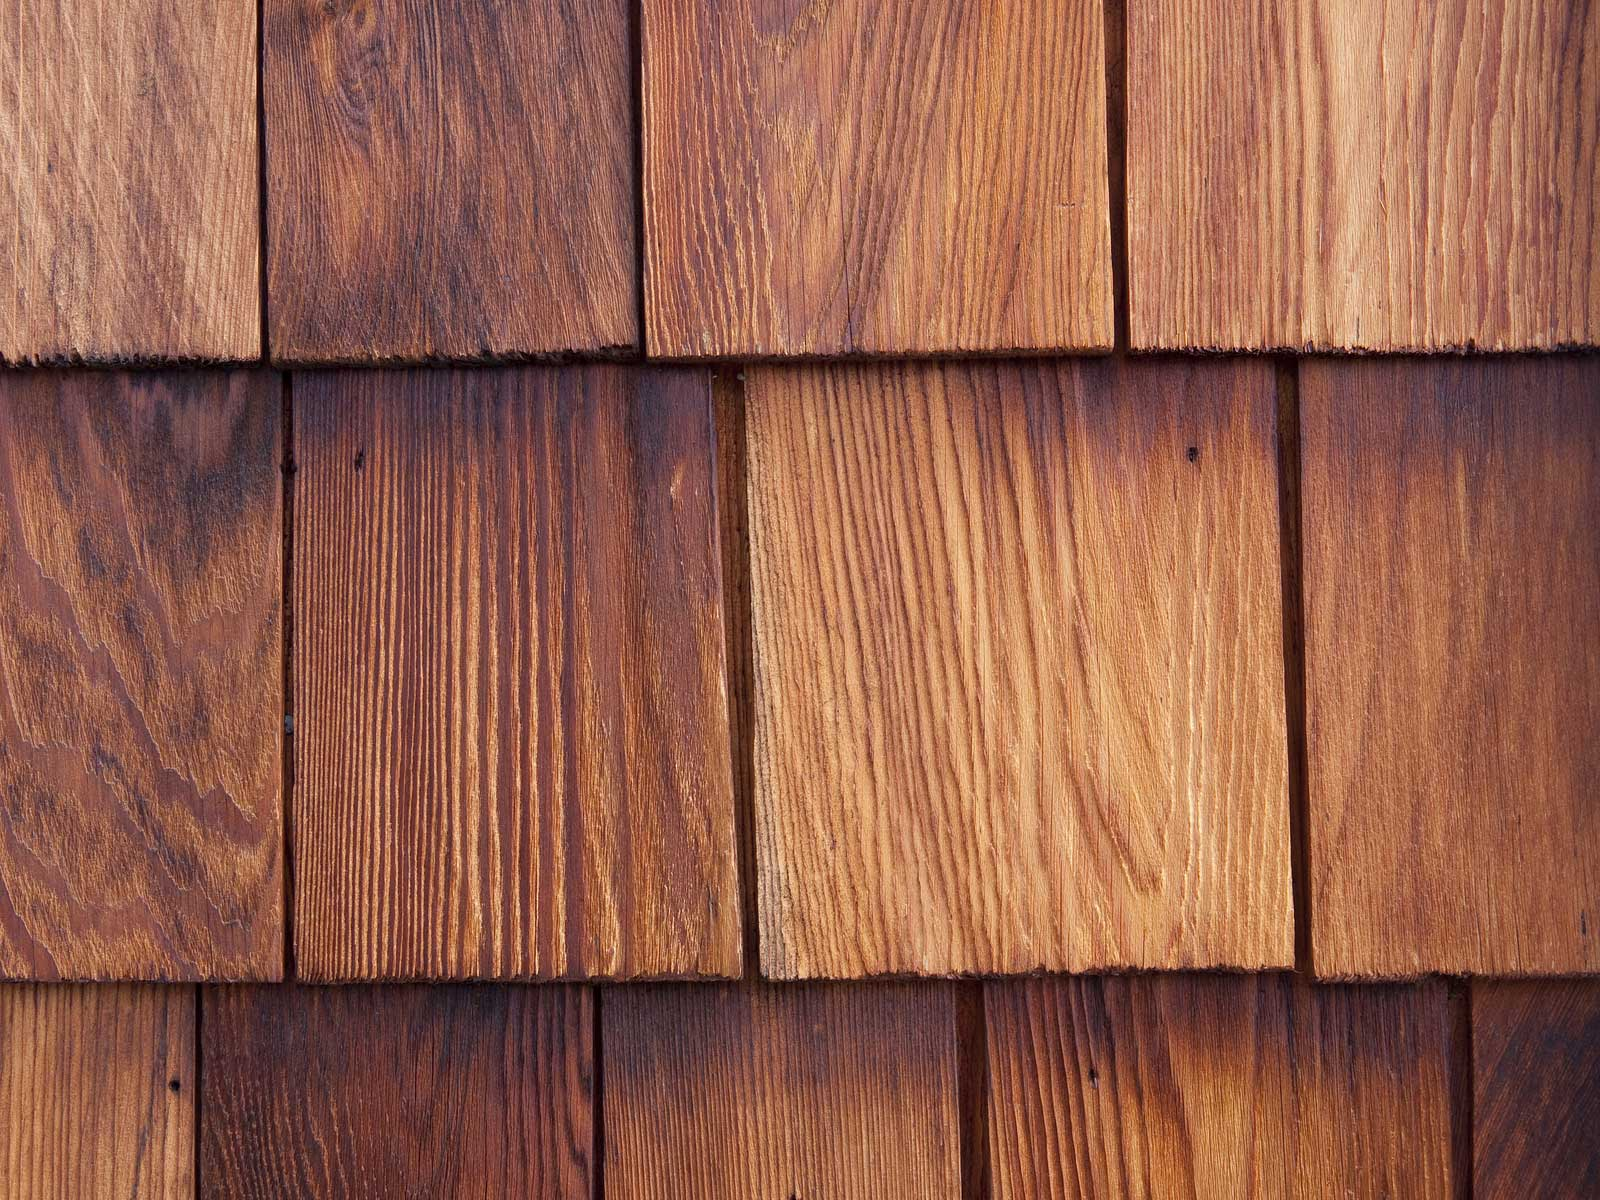 Wood Siding Indianapolis In